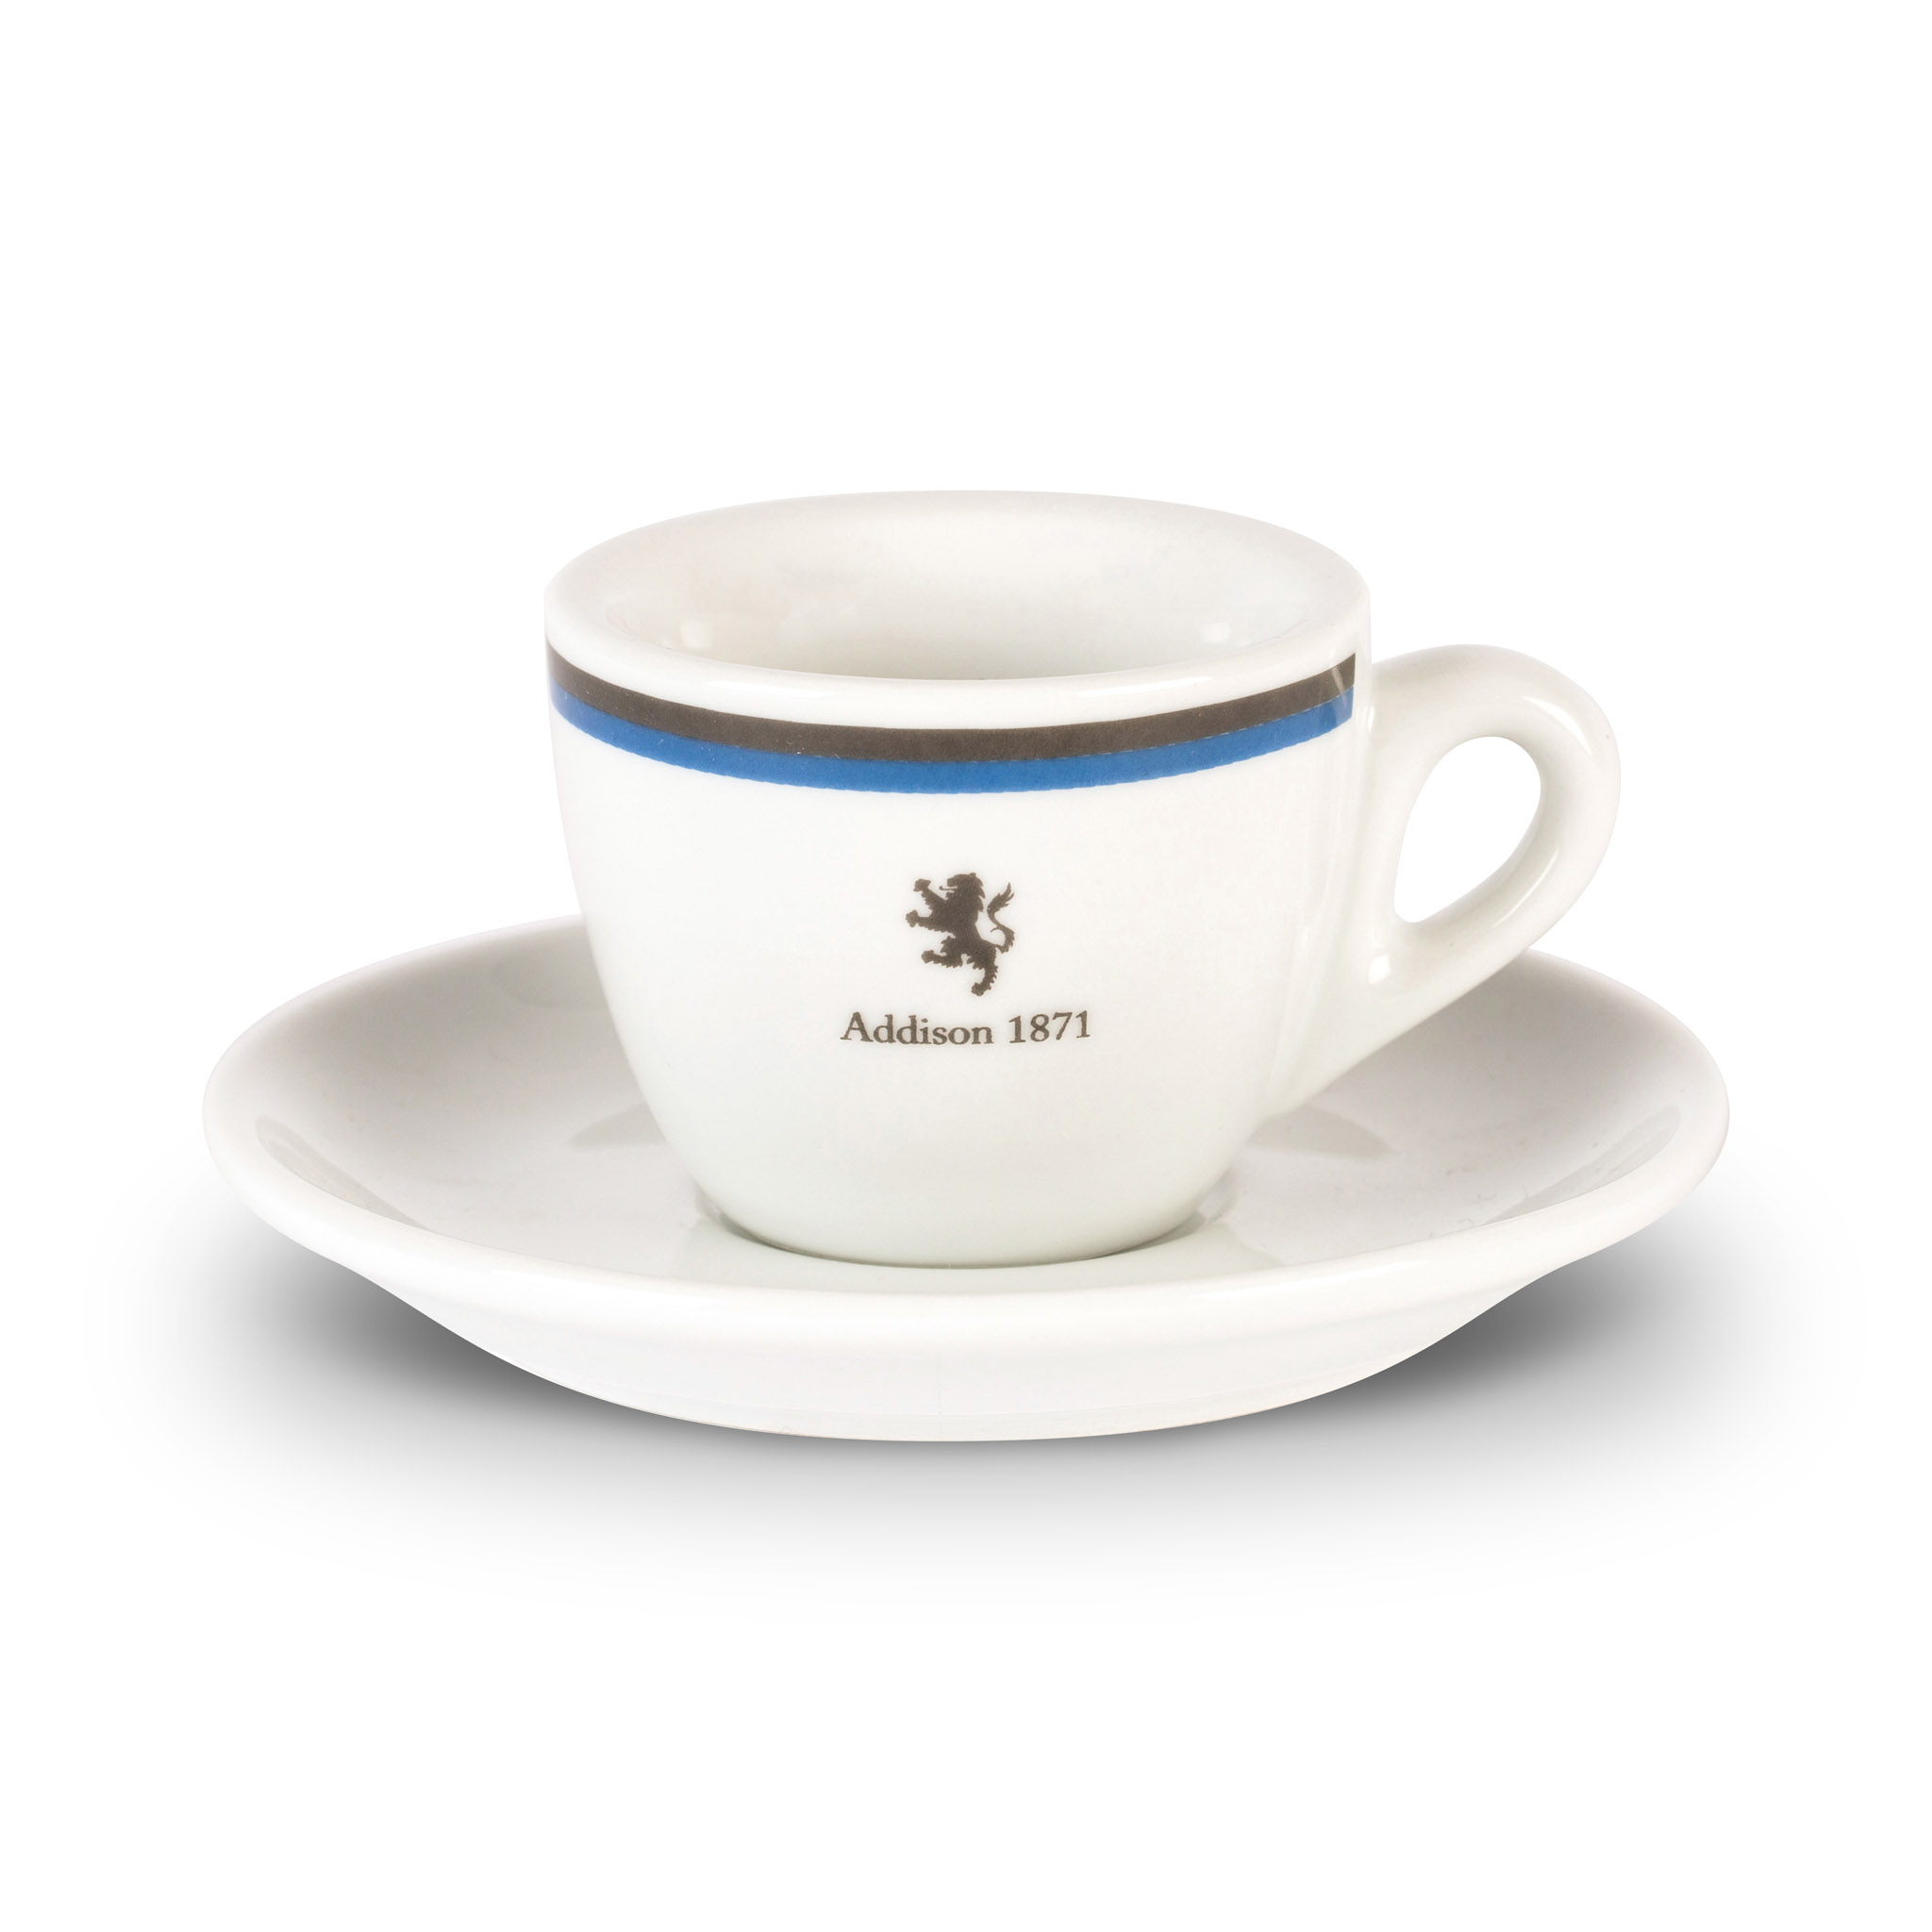 Addison espresso cup and saucer